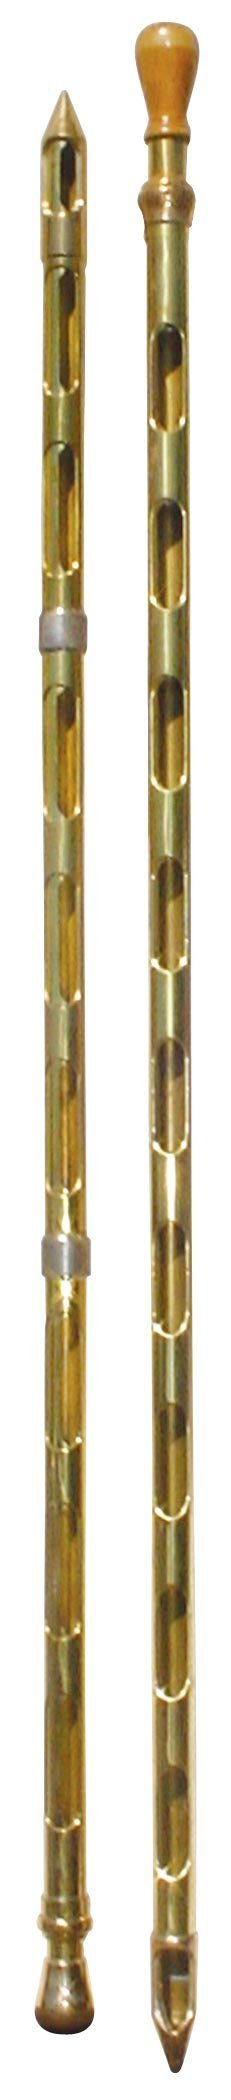 0718: Grain probes (2), both solid brass, one w/wood kn